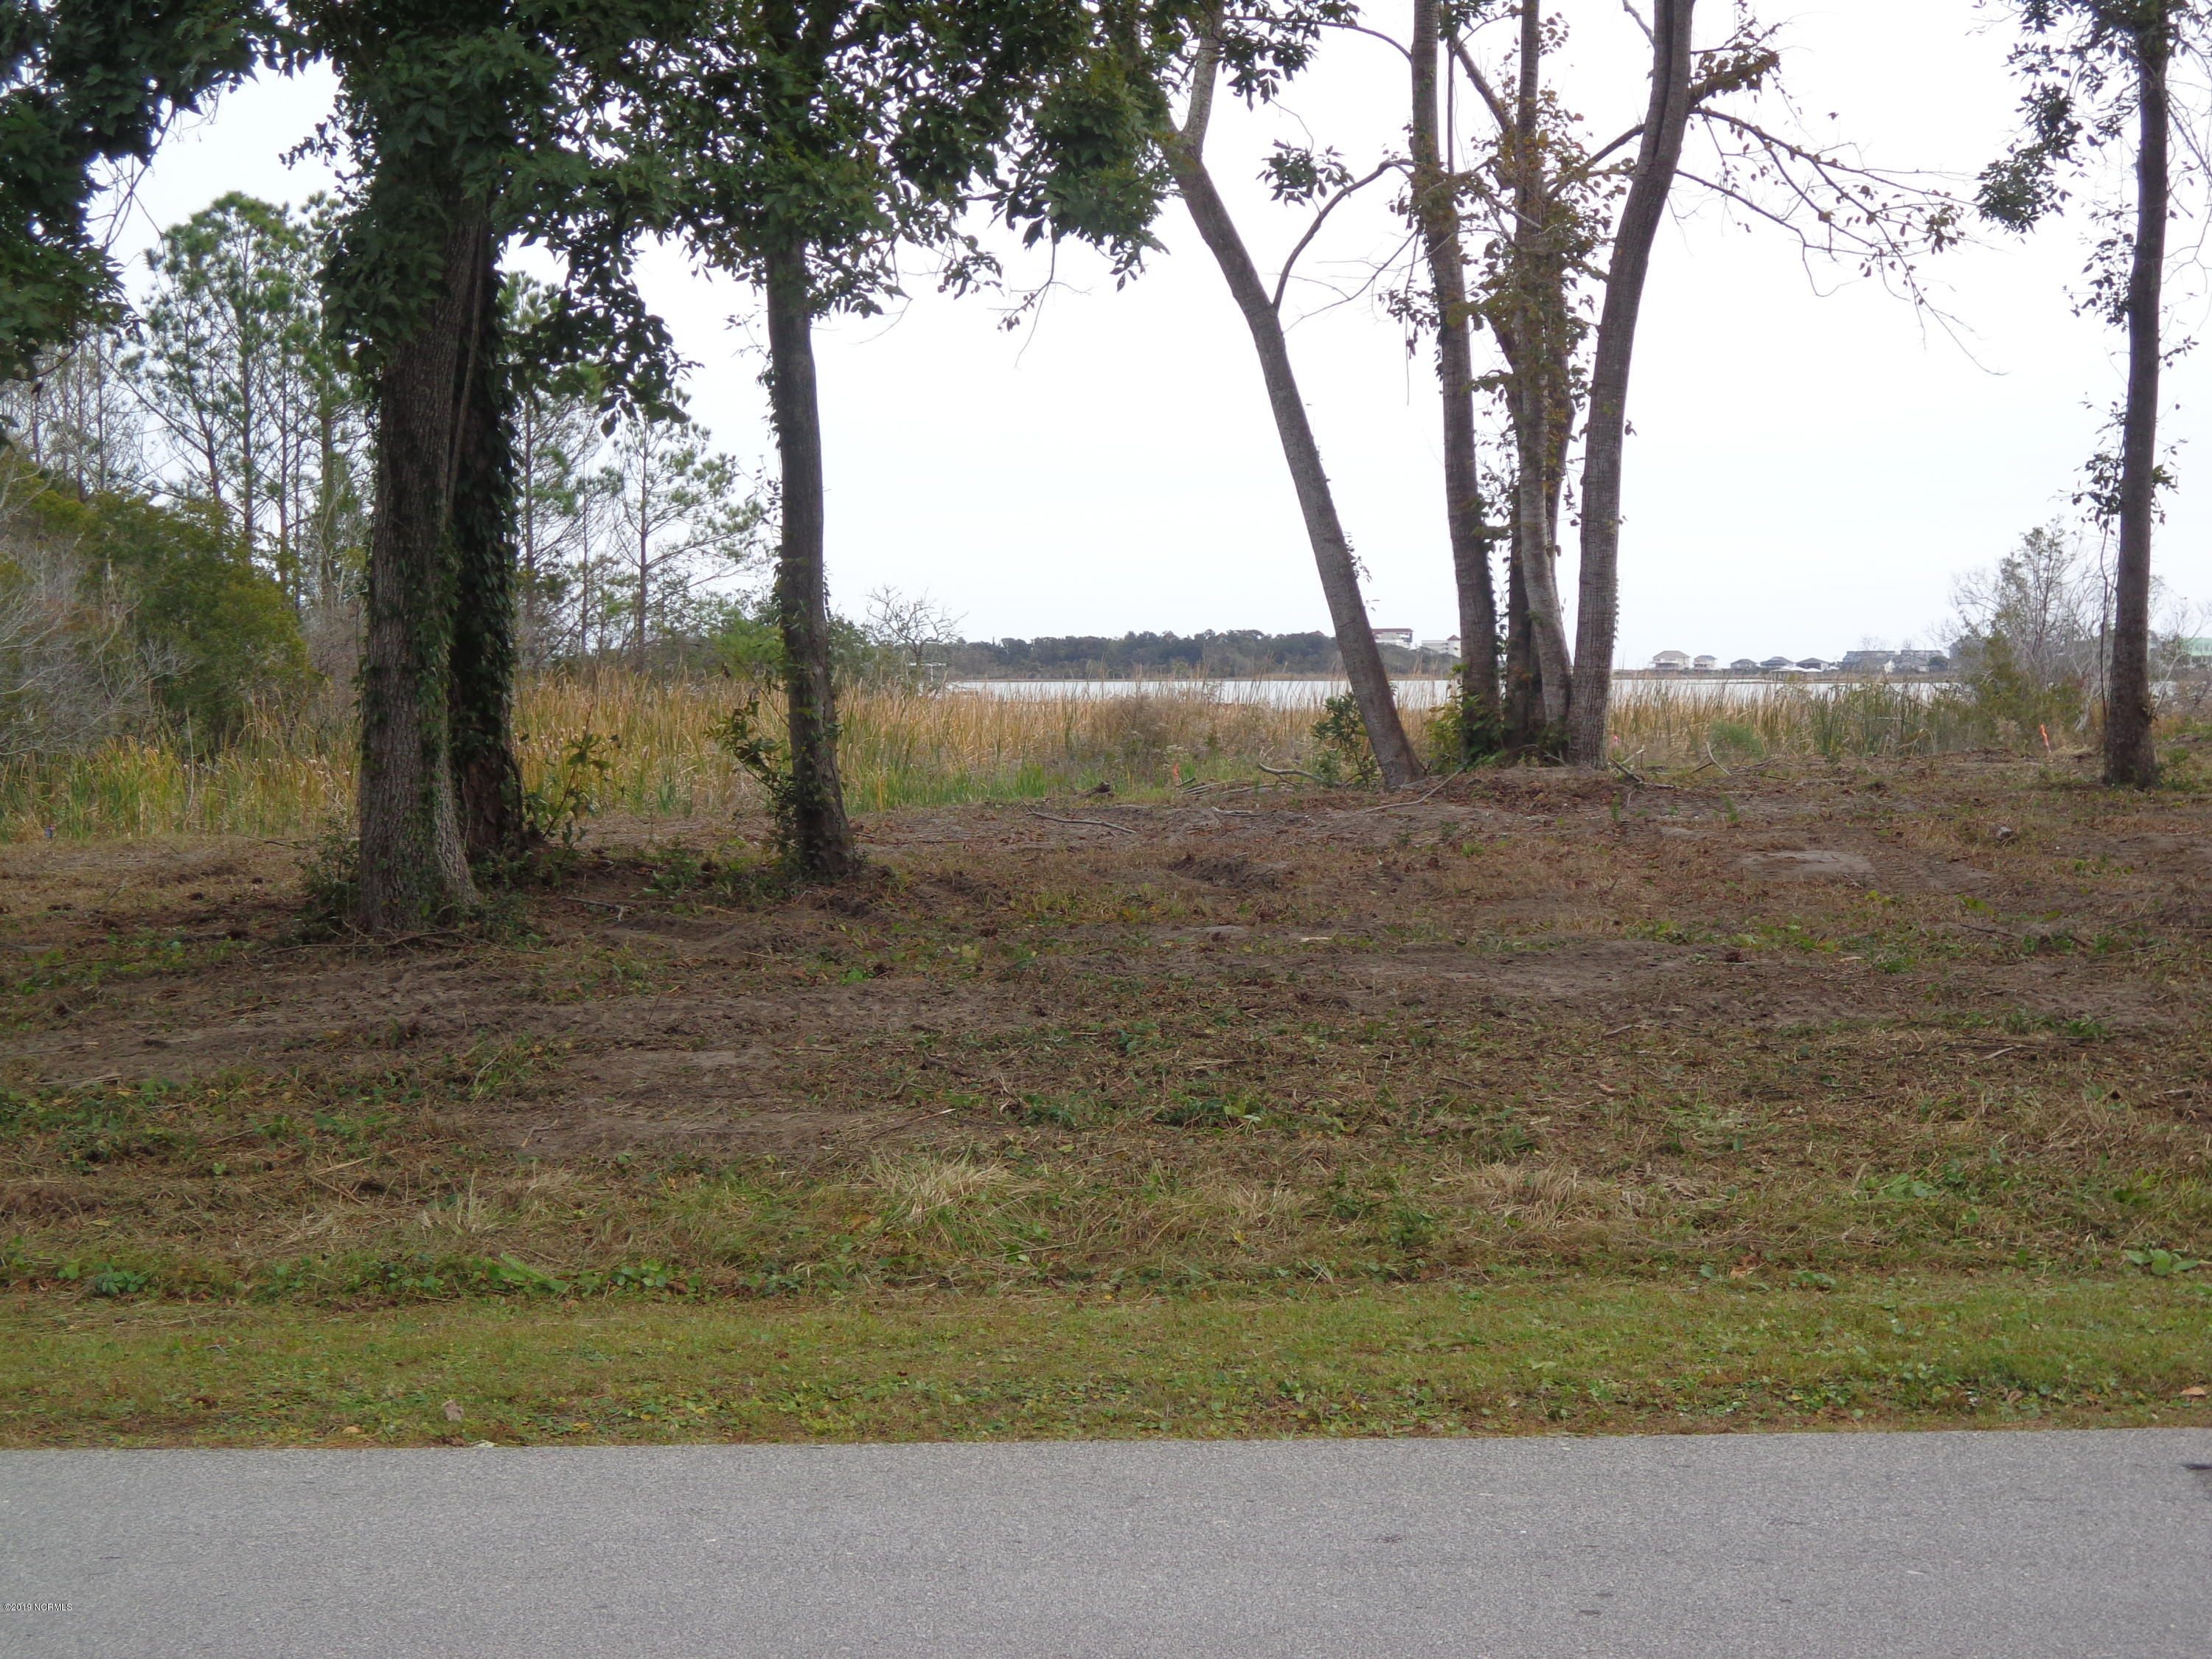 Waterfront building lot ( 1.59 Acres ) in Chadwick Shores , overlooking Chadwick Bay and the Intracoastal Waterway. Chadwick Shores is a private boating community. Well kept with a day dock , and picnic area by the water. It is also gated and landscaped in the gate area. Great place for fishermen , boaters,  and all water lovers.  Lot has been surveyed , wetland delineation defined, soil evaluation, and building envelope established.  Call for this information.